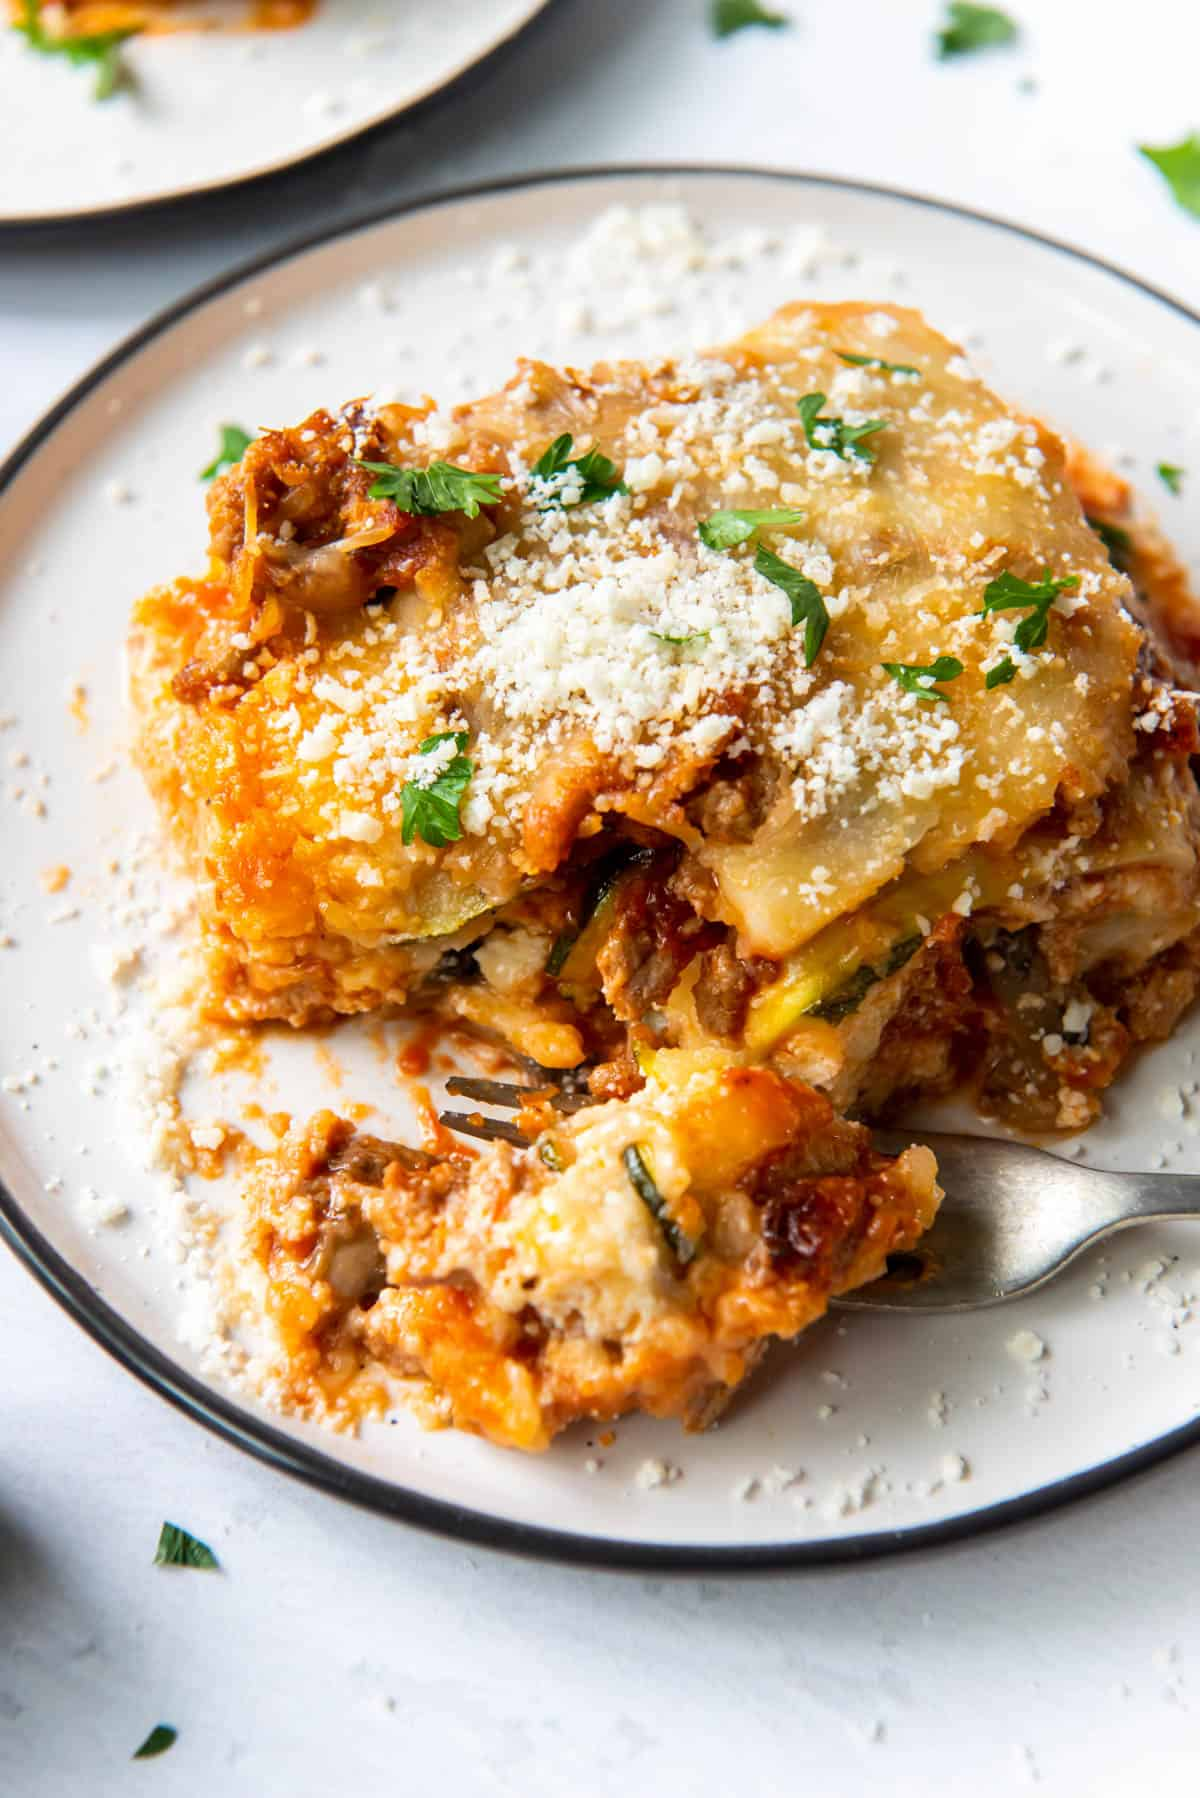 a slice of zucchini lasagna on a plate with a bite taken out with a fork